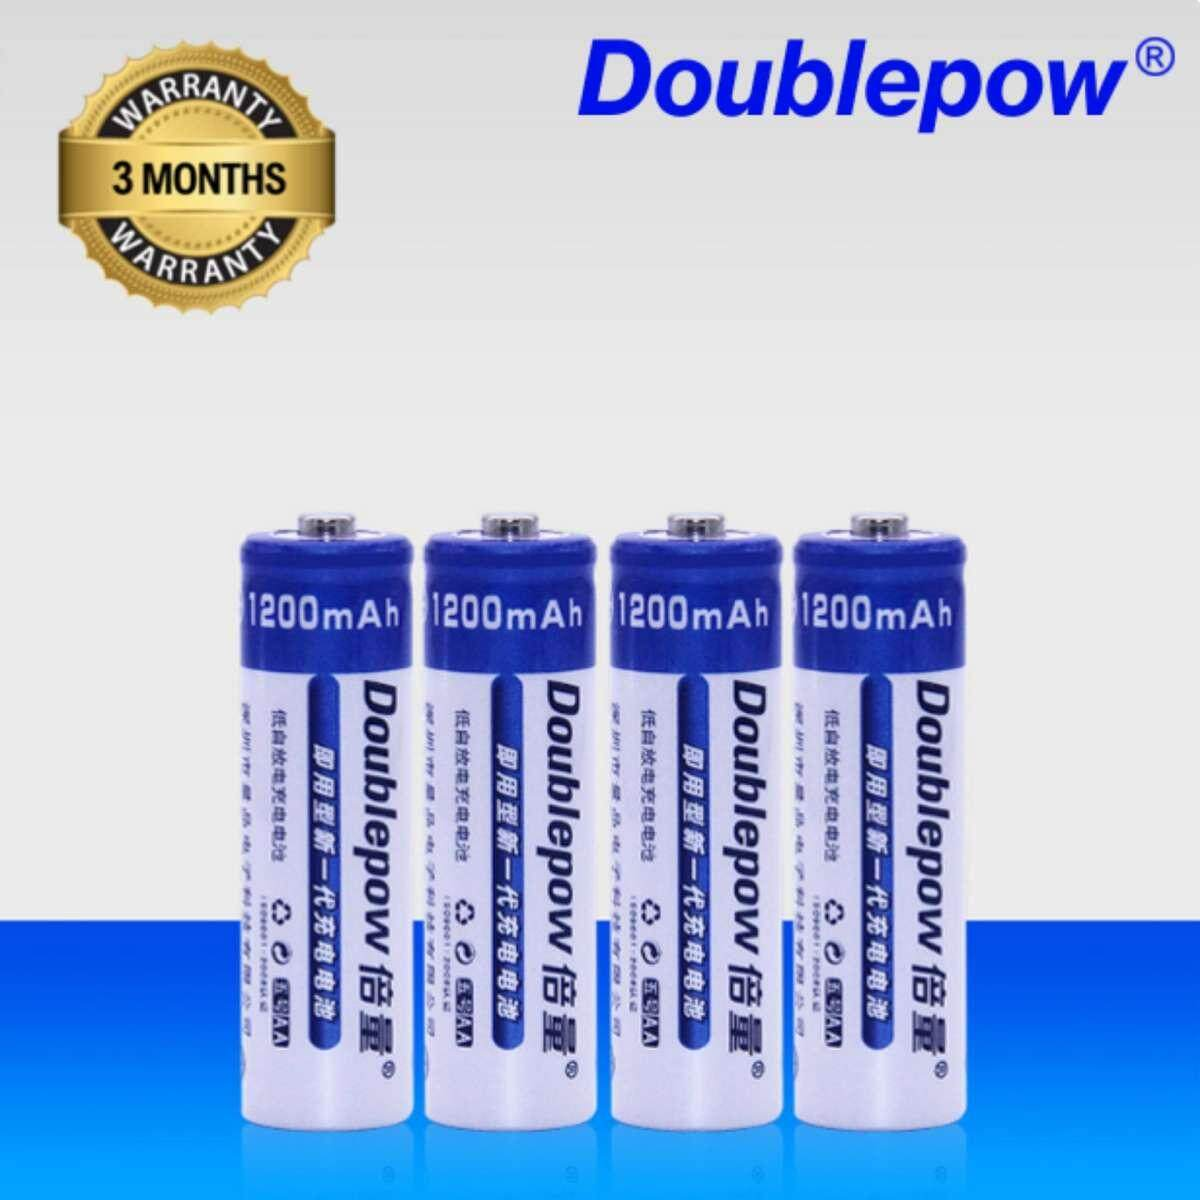 [4 Pcs] Aa 1.2v Rechargeable Battery Original Doublepow / 1200mah Aa Rechargeable Battery [3 Months Warranty] By Fly Automart.